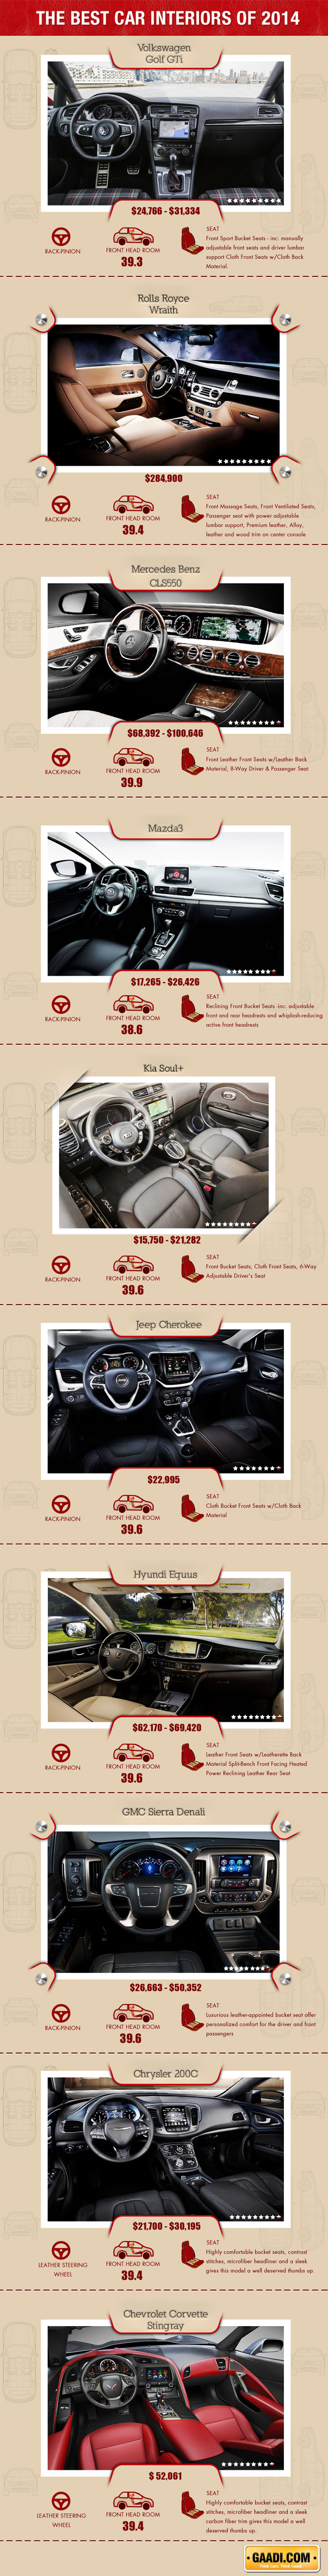 the-best-car-interiors-infographic-plaza